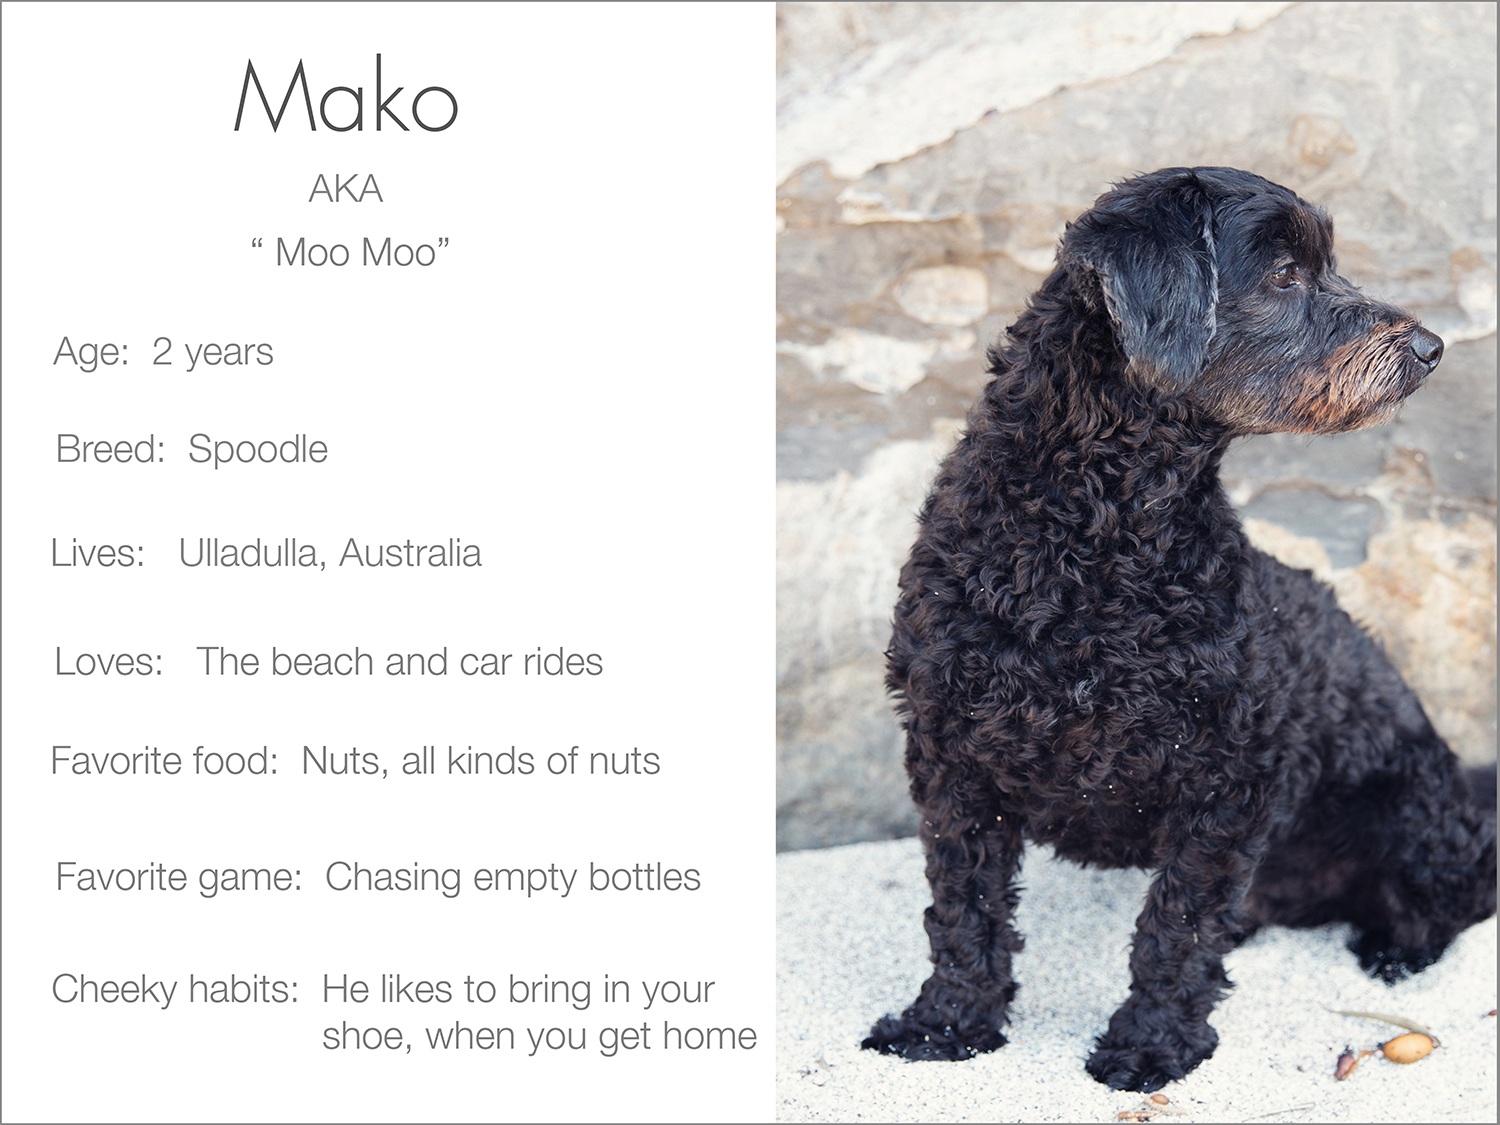 Mako profile dogs_and_the_city kristie_lee_photographer Charlie.jpg